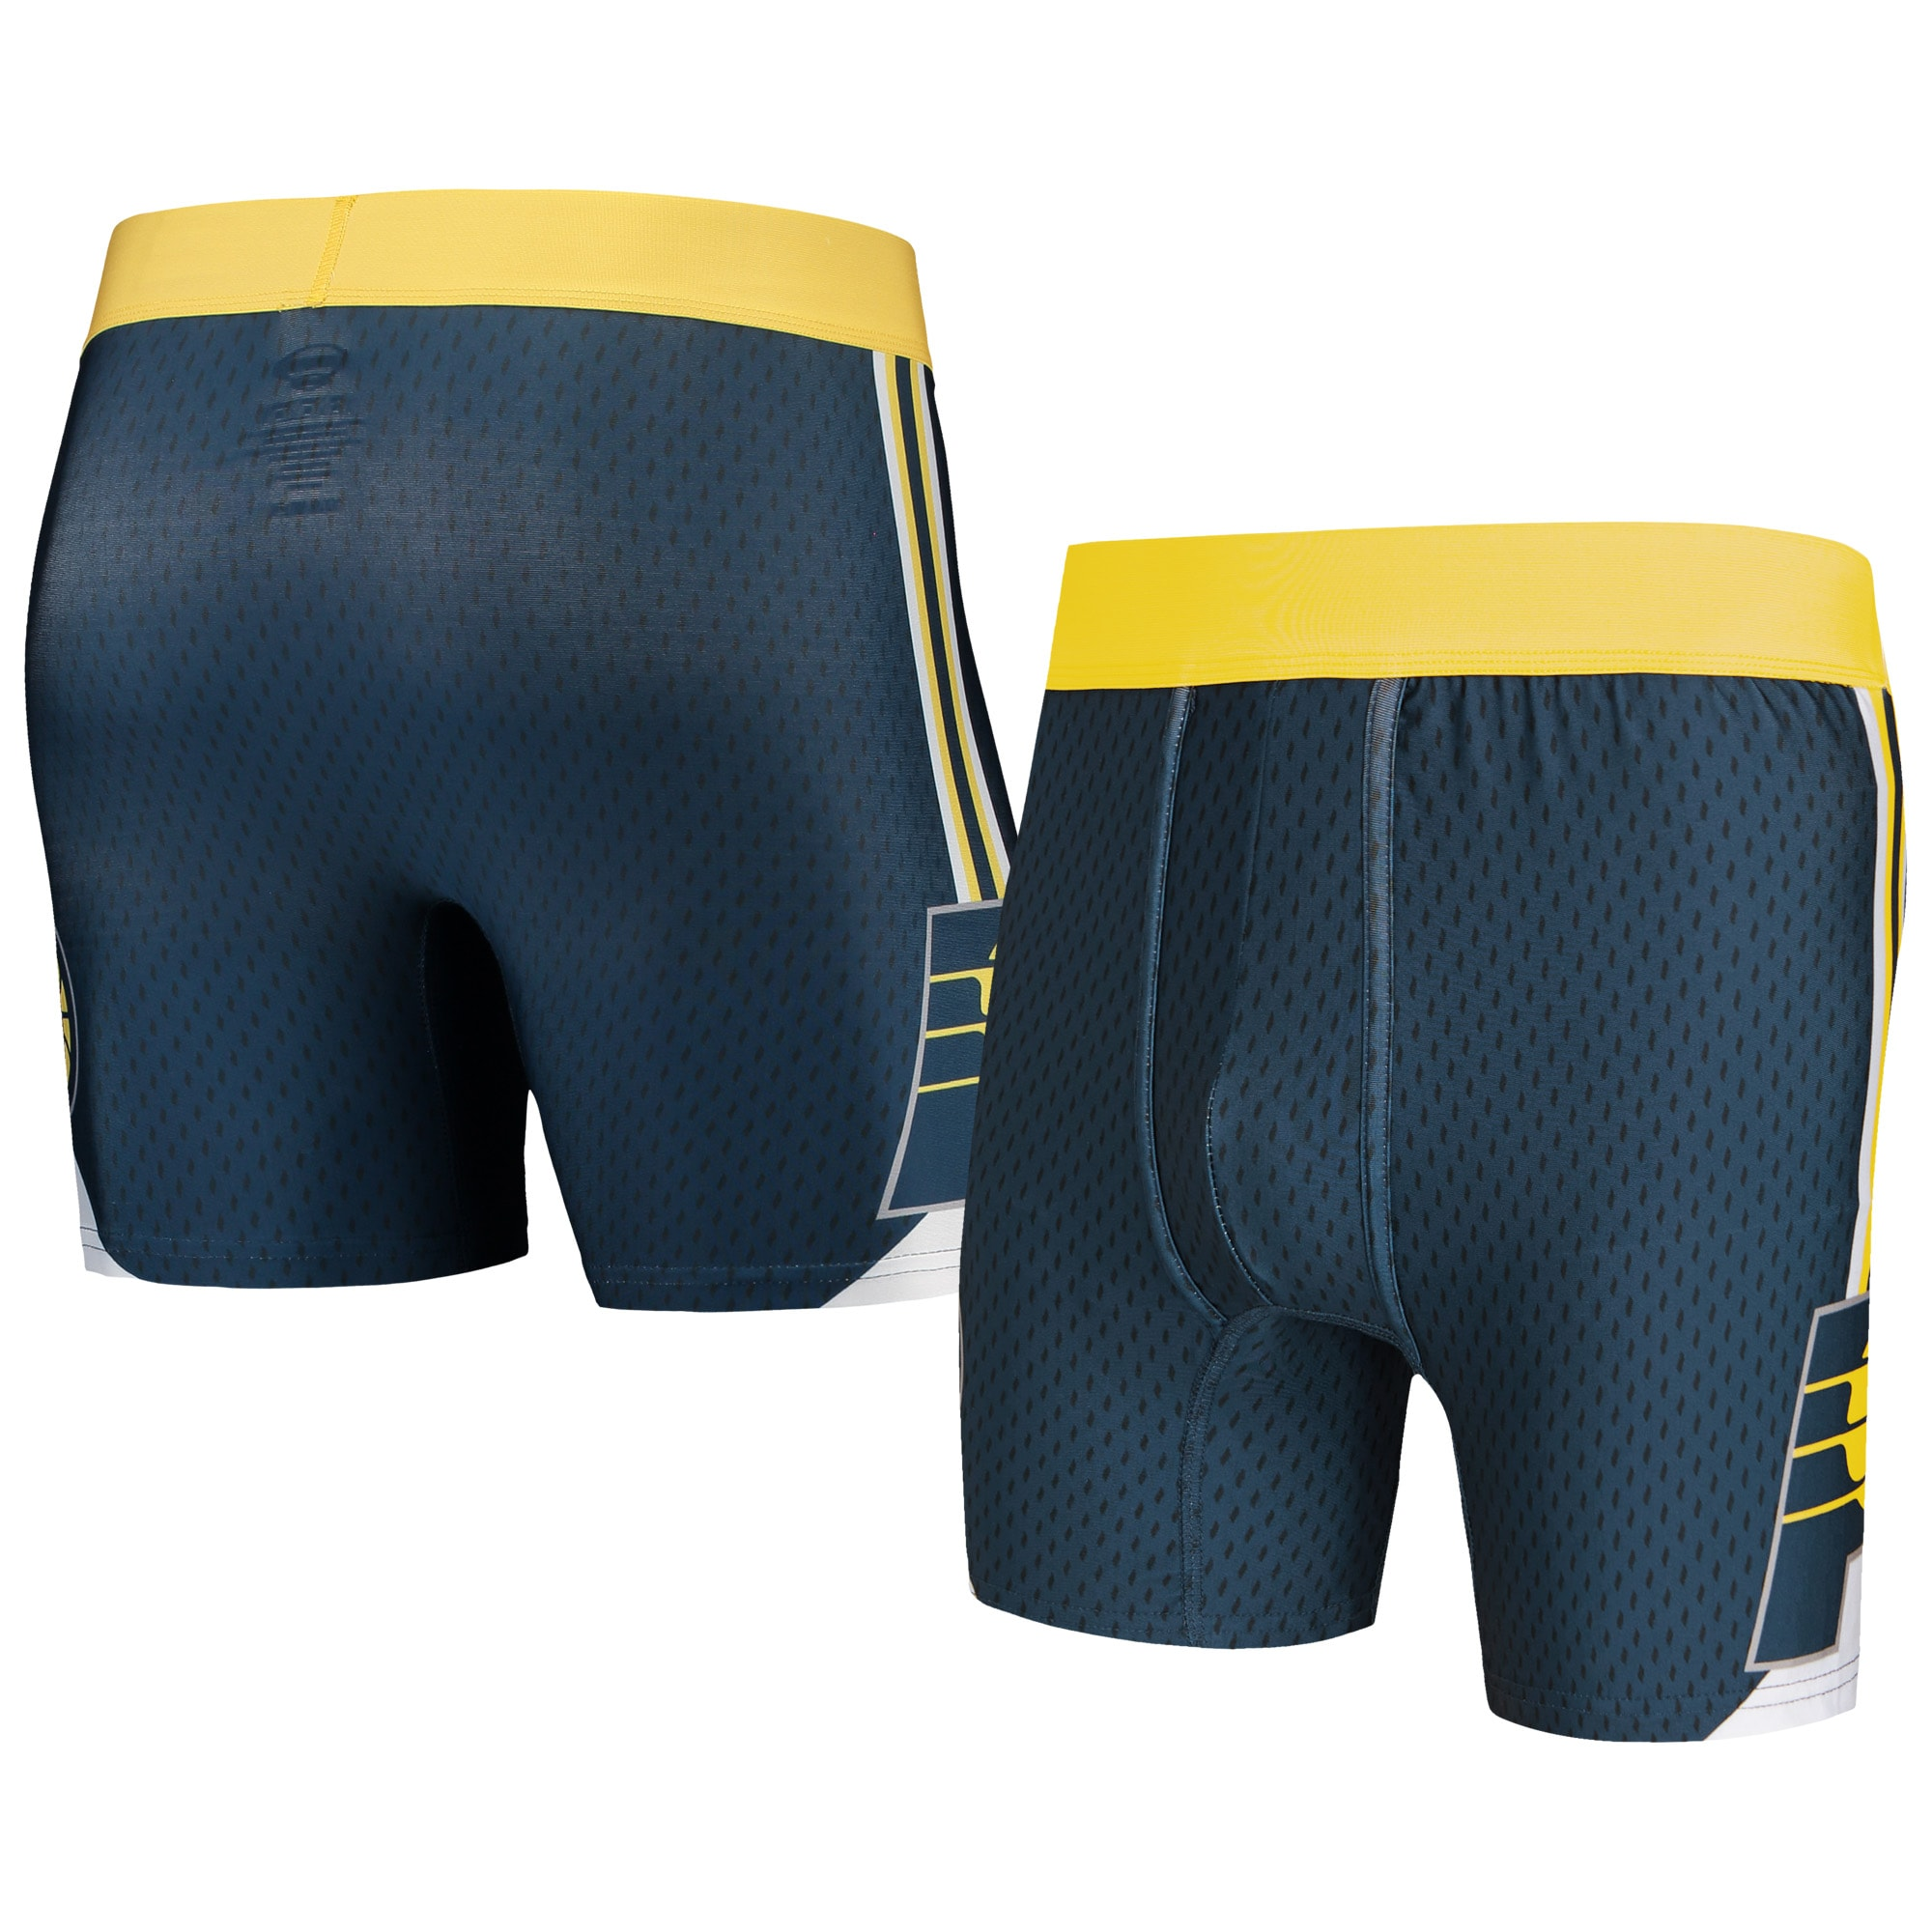 Indiana Pacers Concepts Sport Flyaway Swingman Boxer Briefs - Navy